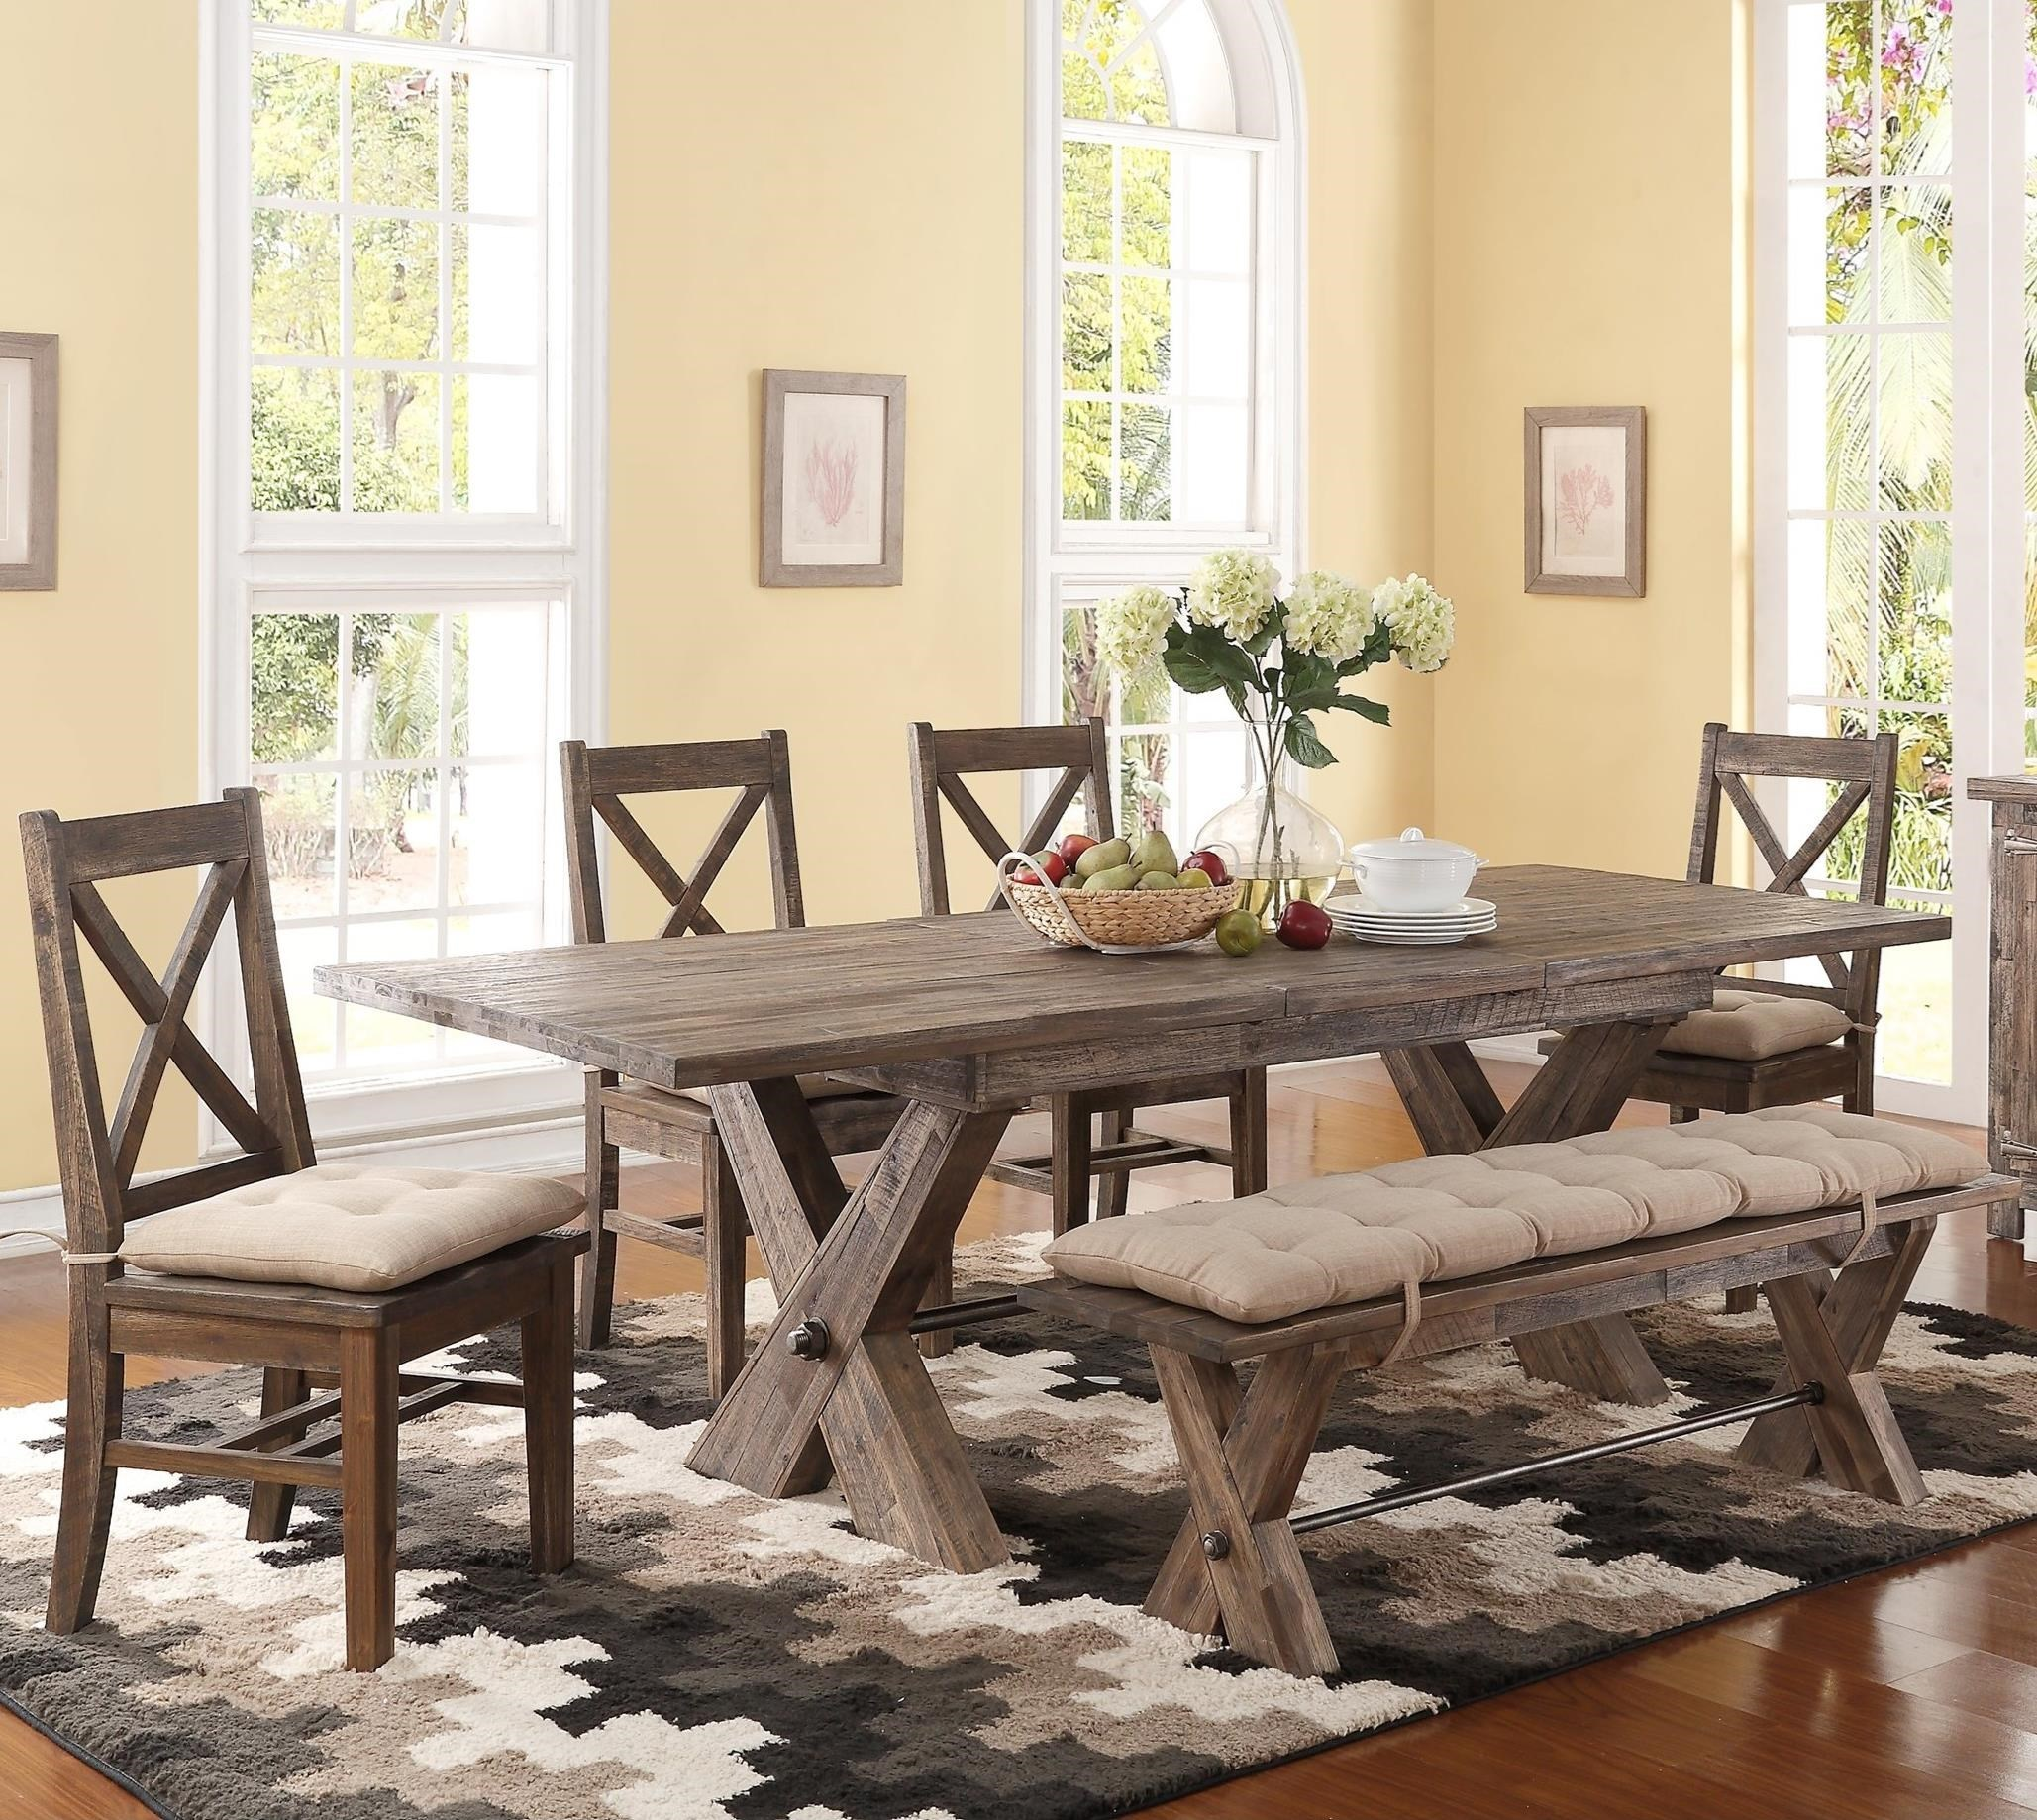 Superbe New Classic Tuscany Park6 Piece Trestle Dining Table Set ...